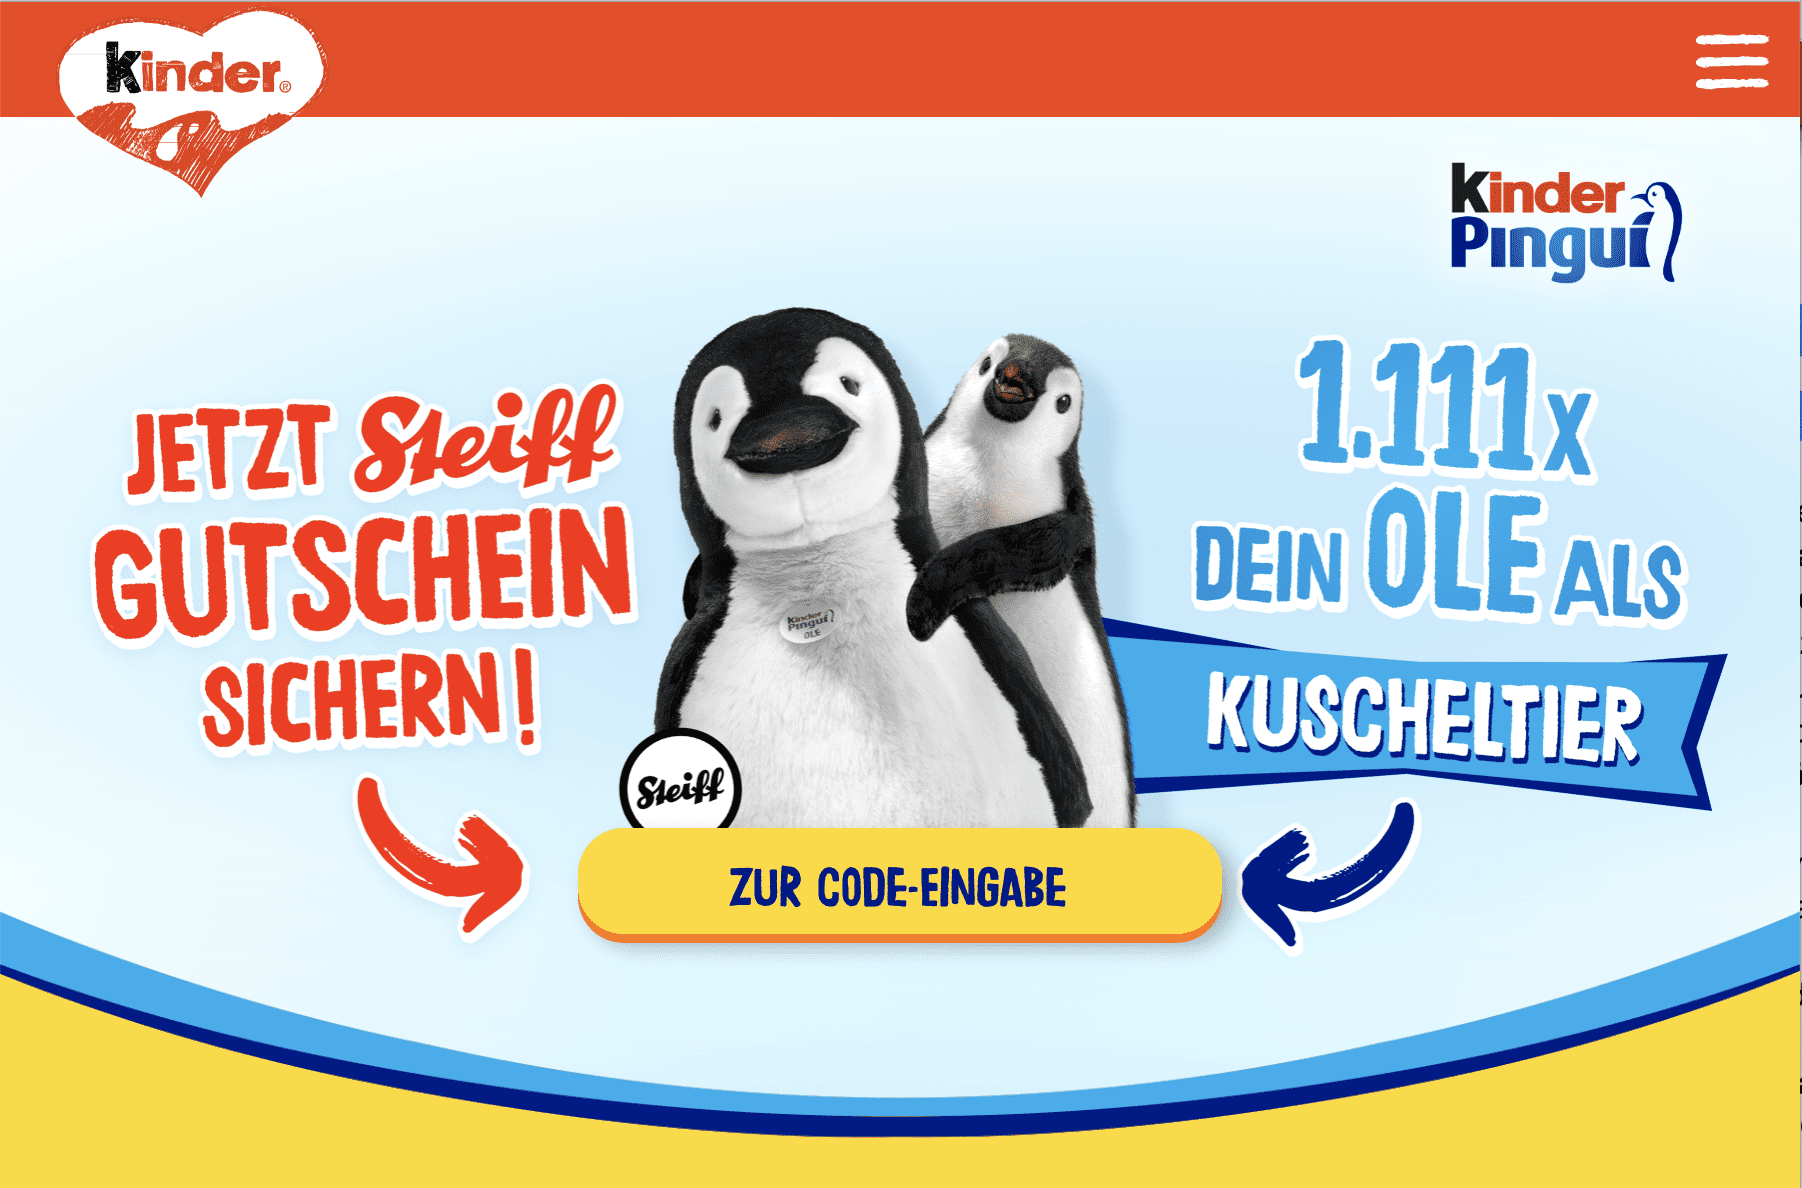 Kinder Pinguine Gewinnspiel-Cases FMCG Süßwaren & Snacks